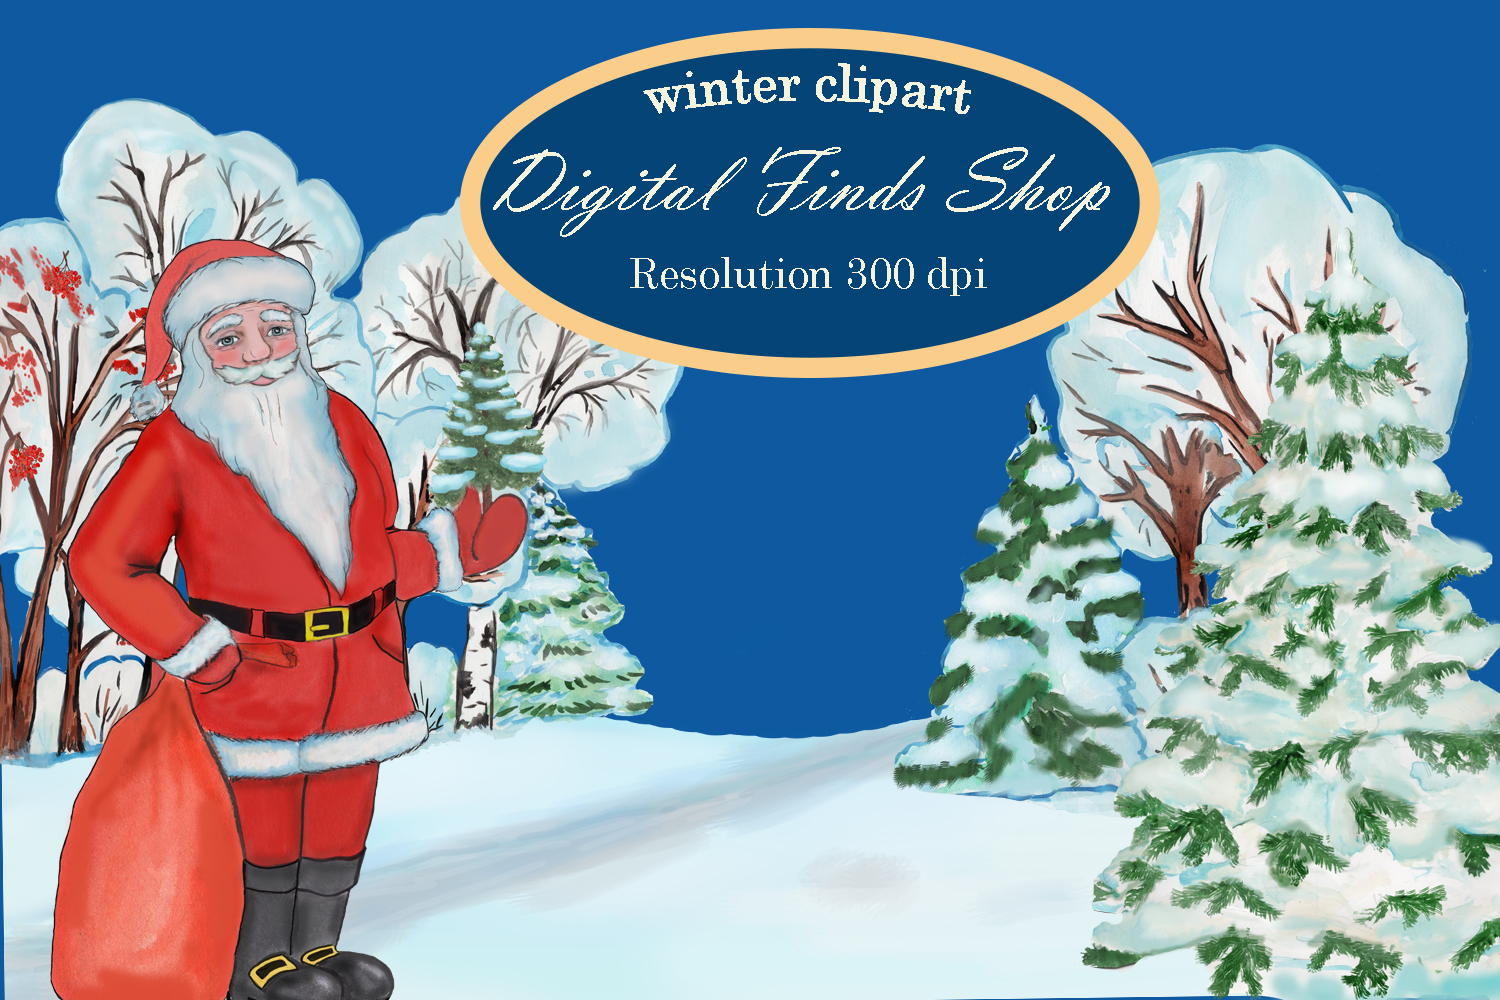 Christmas clipart, winter forest trees with Santa Claus example image 1